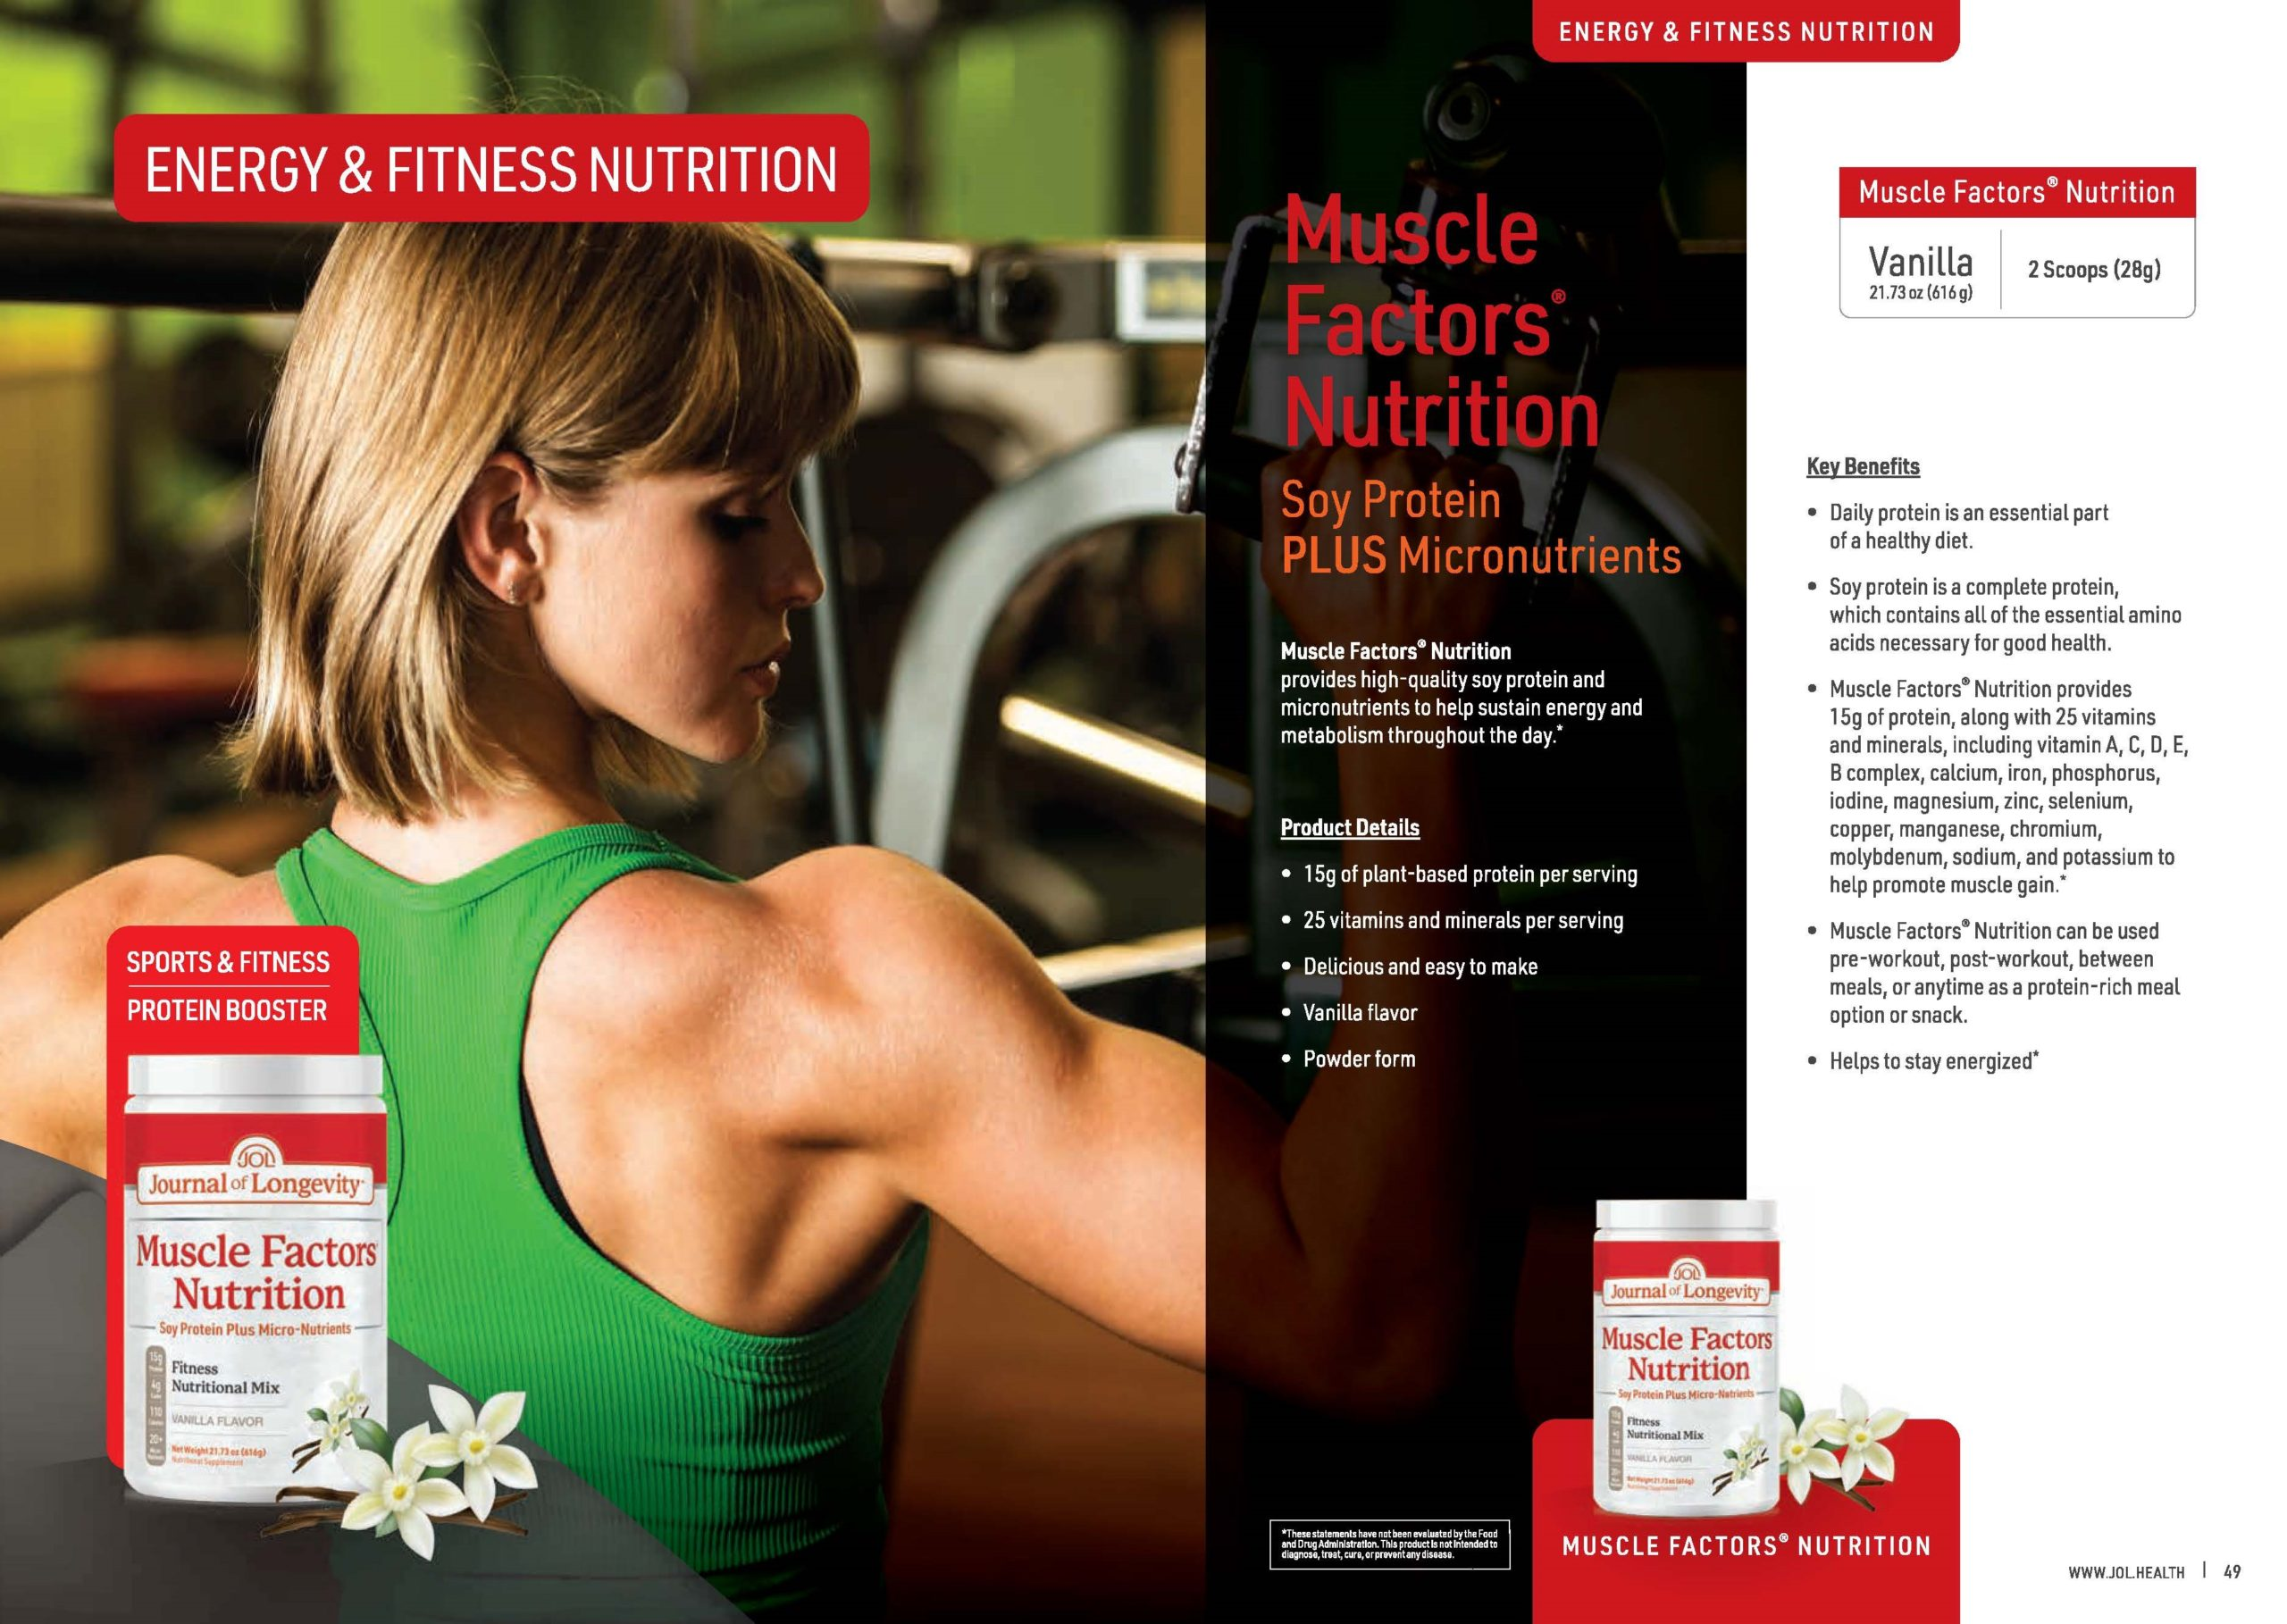 Journal of Longevity Muscle Factors Nutrition Soy Protein Powder Supplement For Sports And Fitness